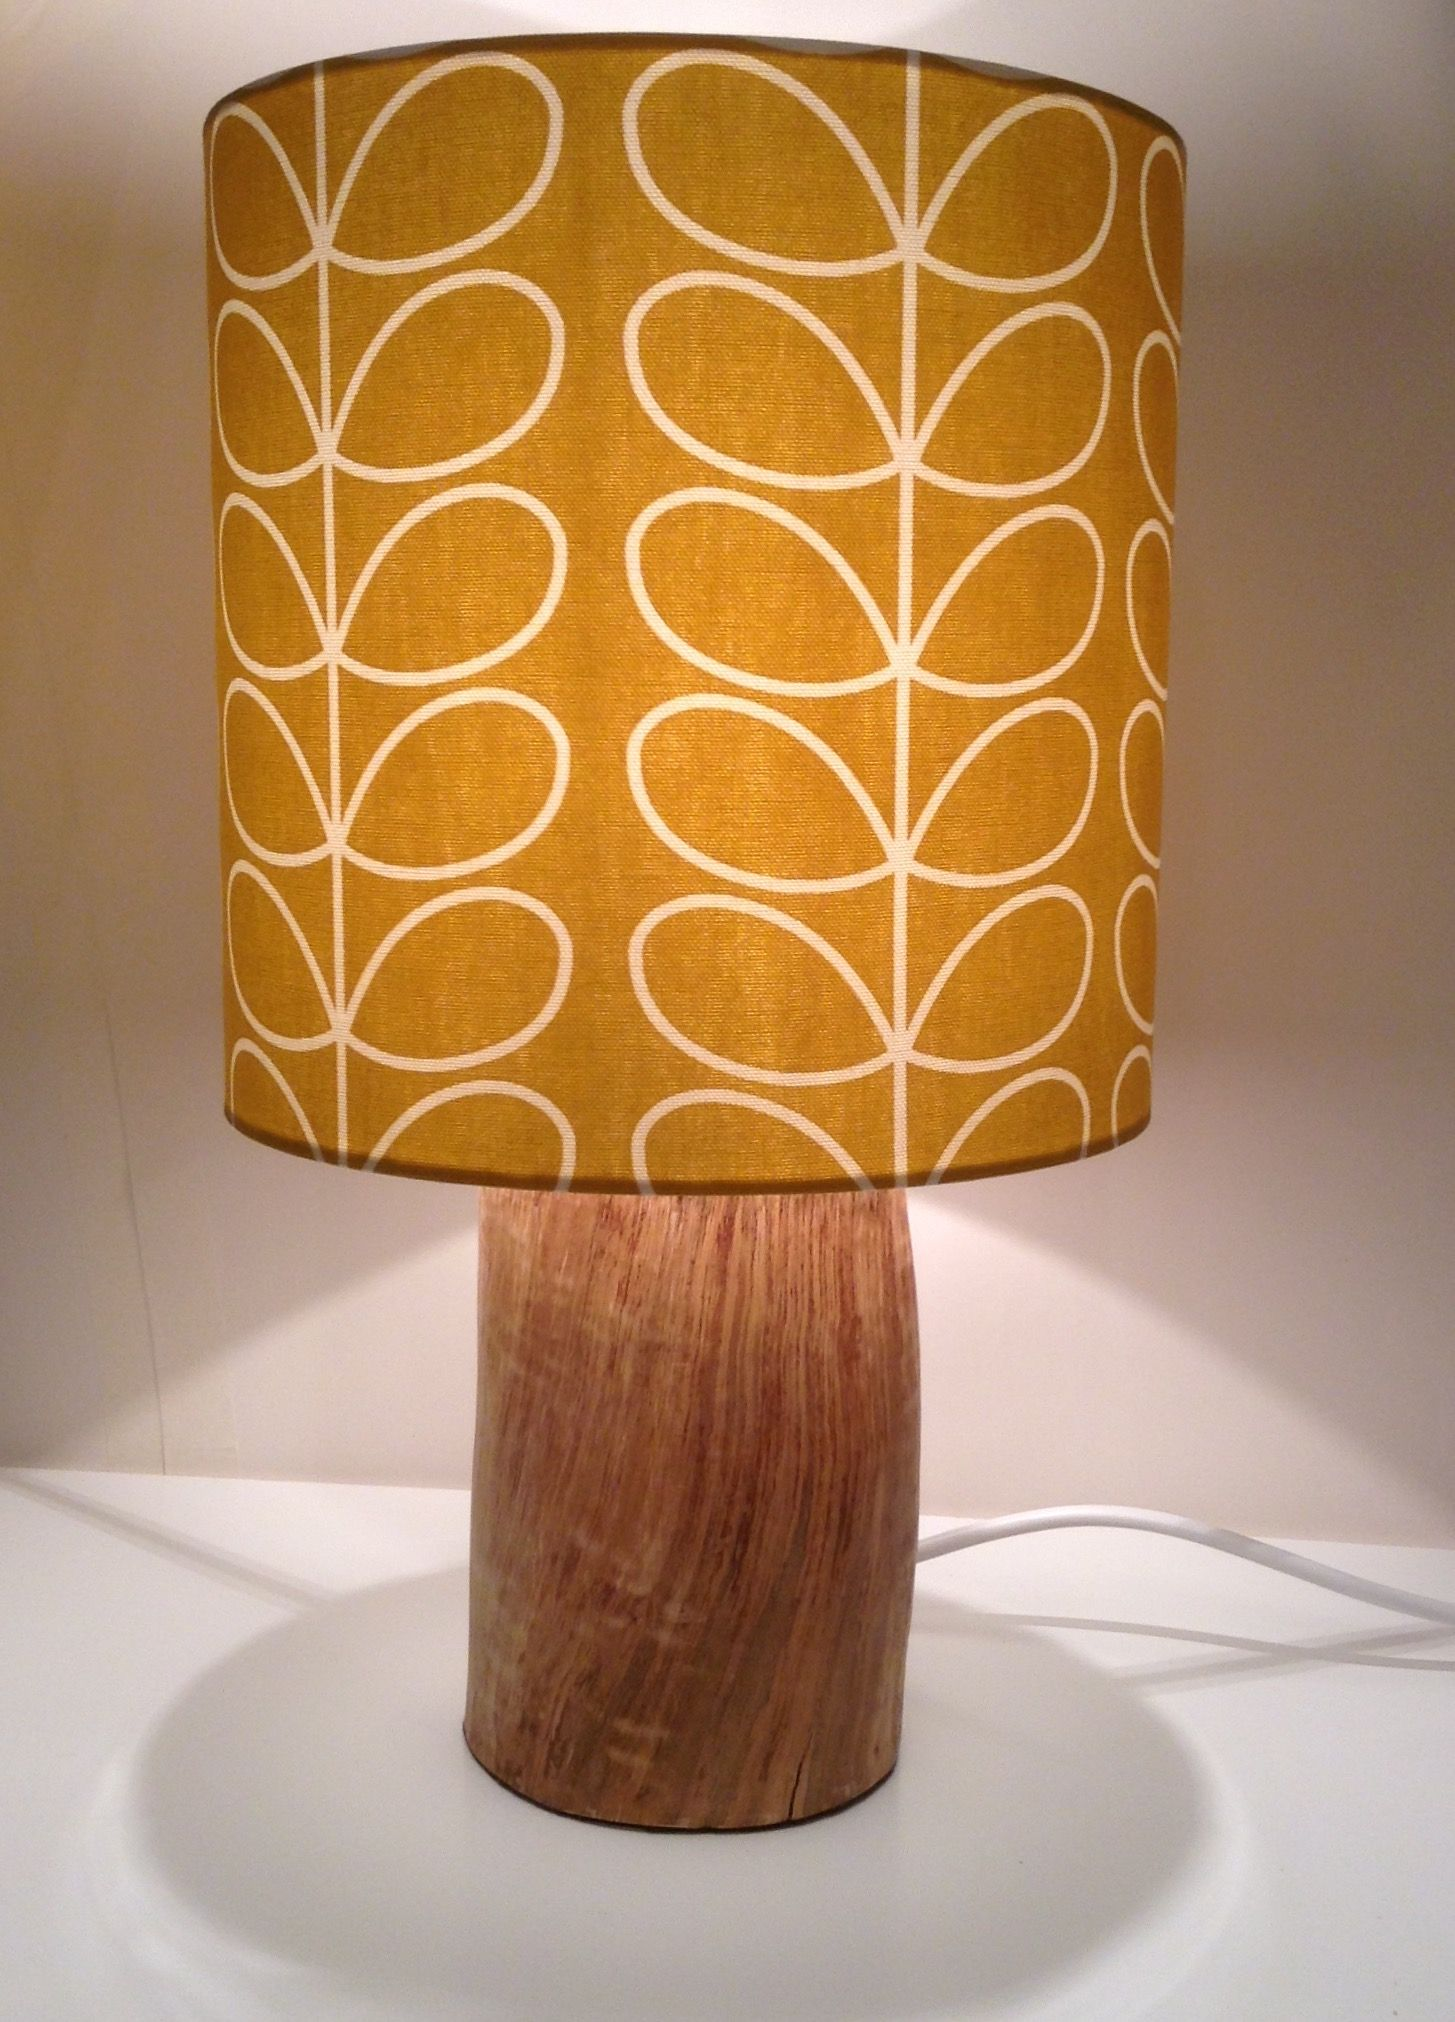 Log Lamp Wood Table Lamp Reclaimed Wood From A Eucalyptus Tree